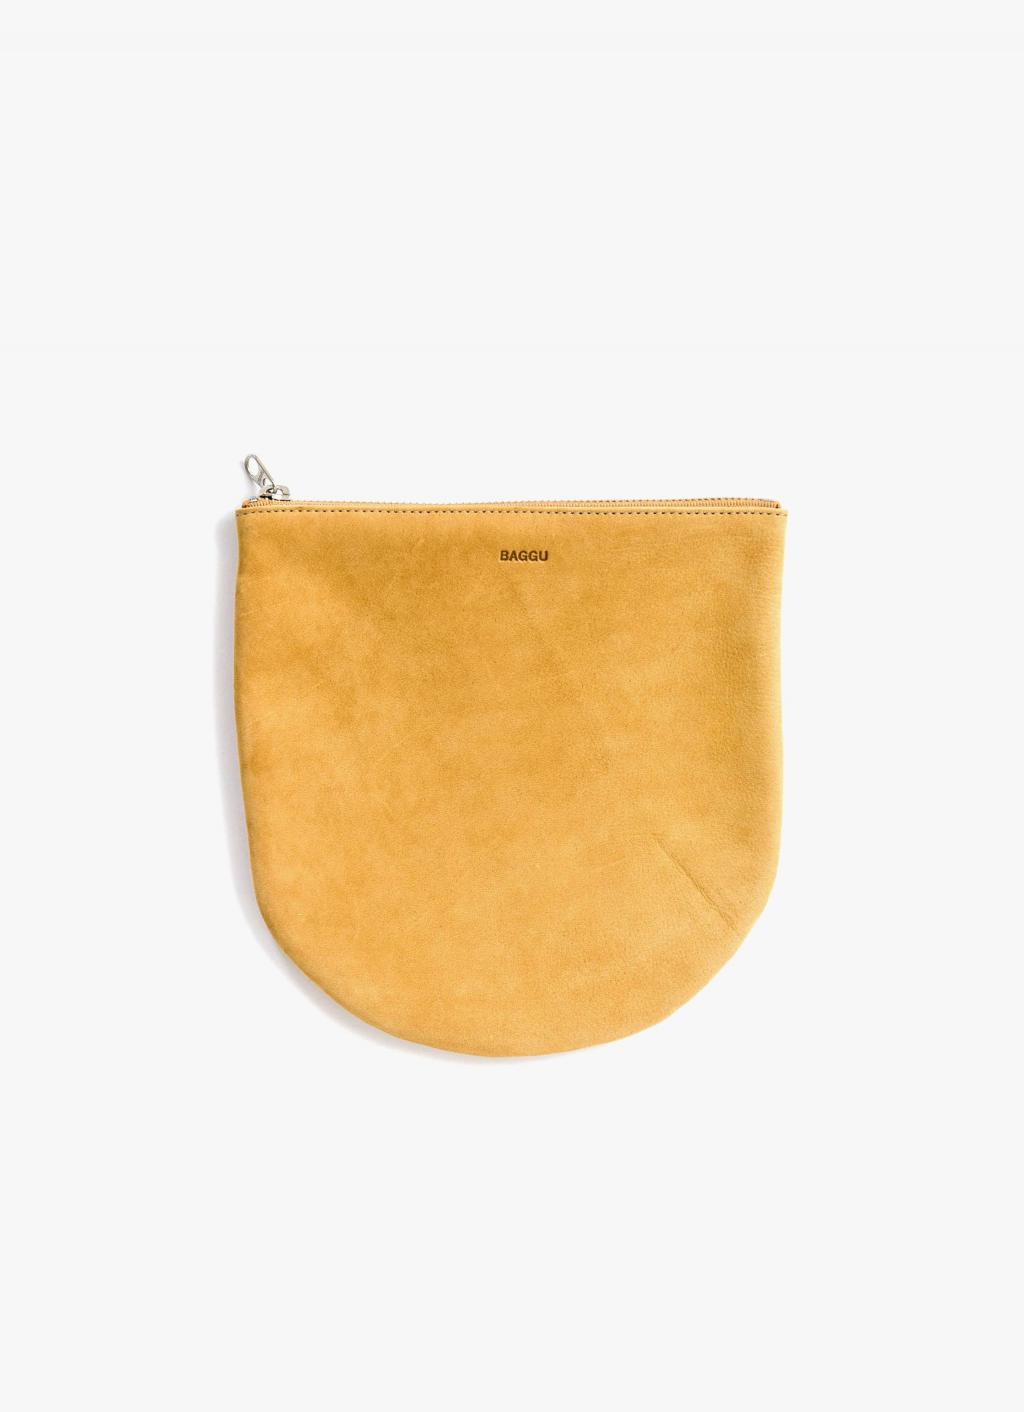 Baggu - Large U Pouch - Honey - Nubuck Leather